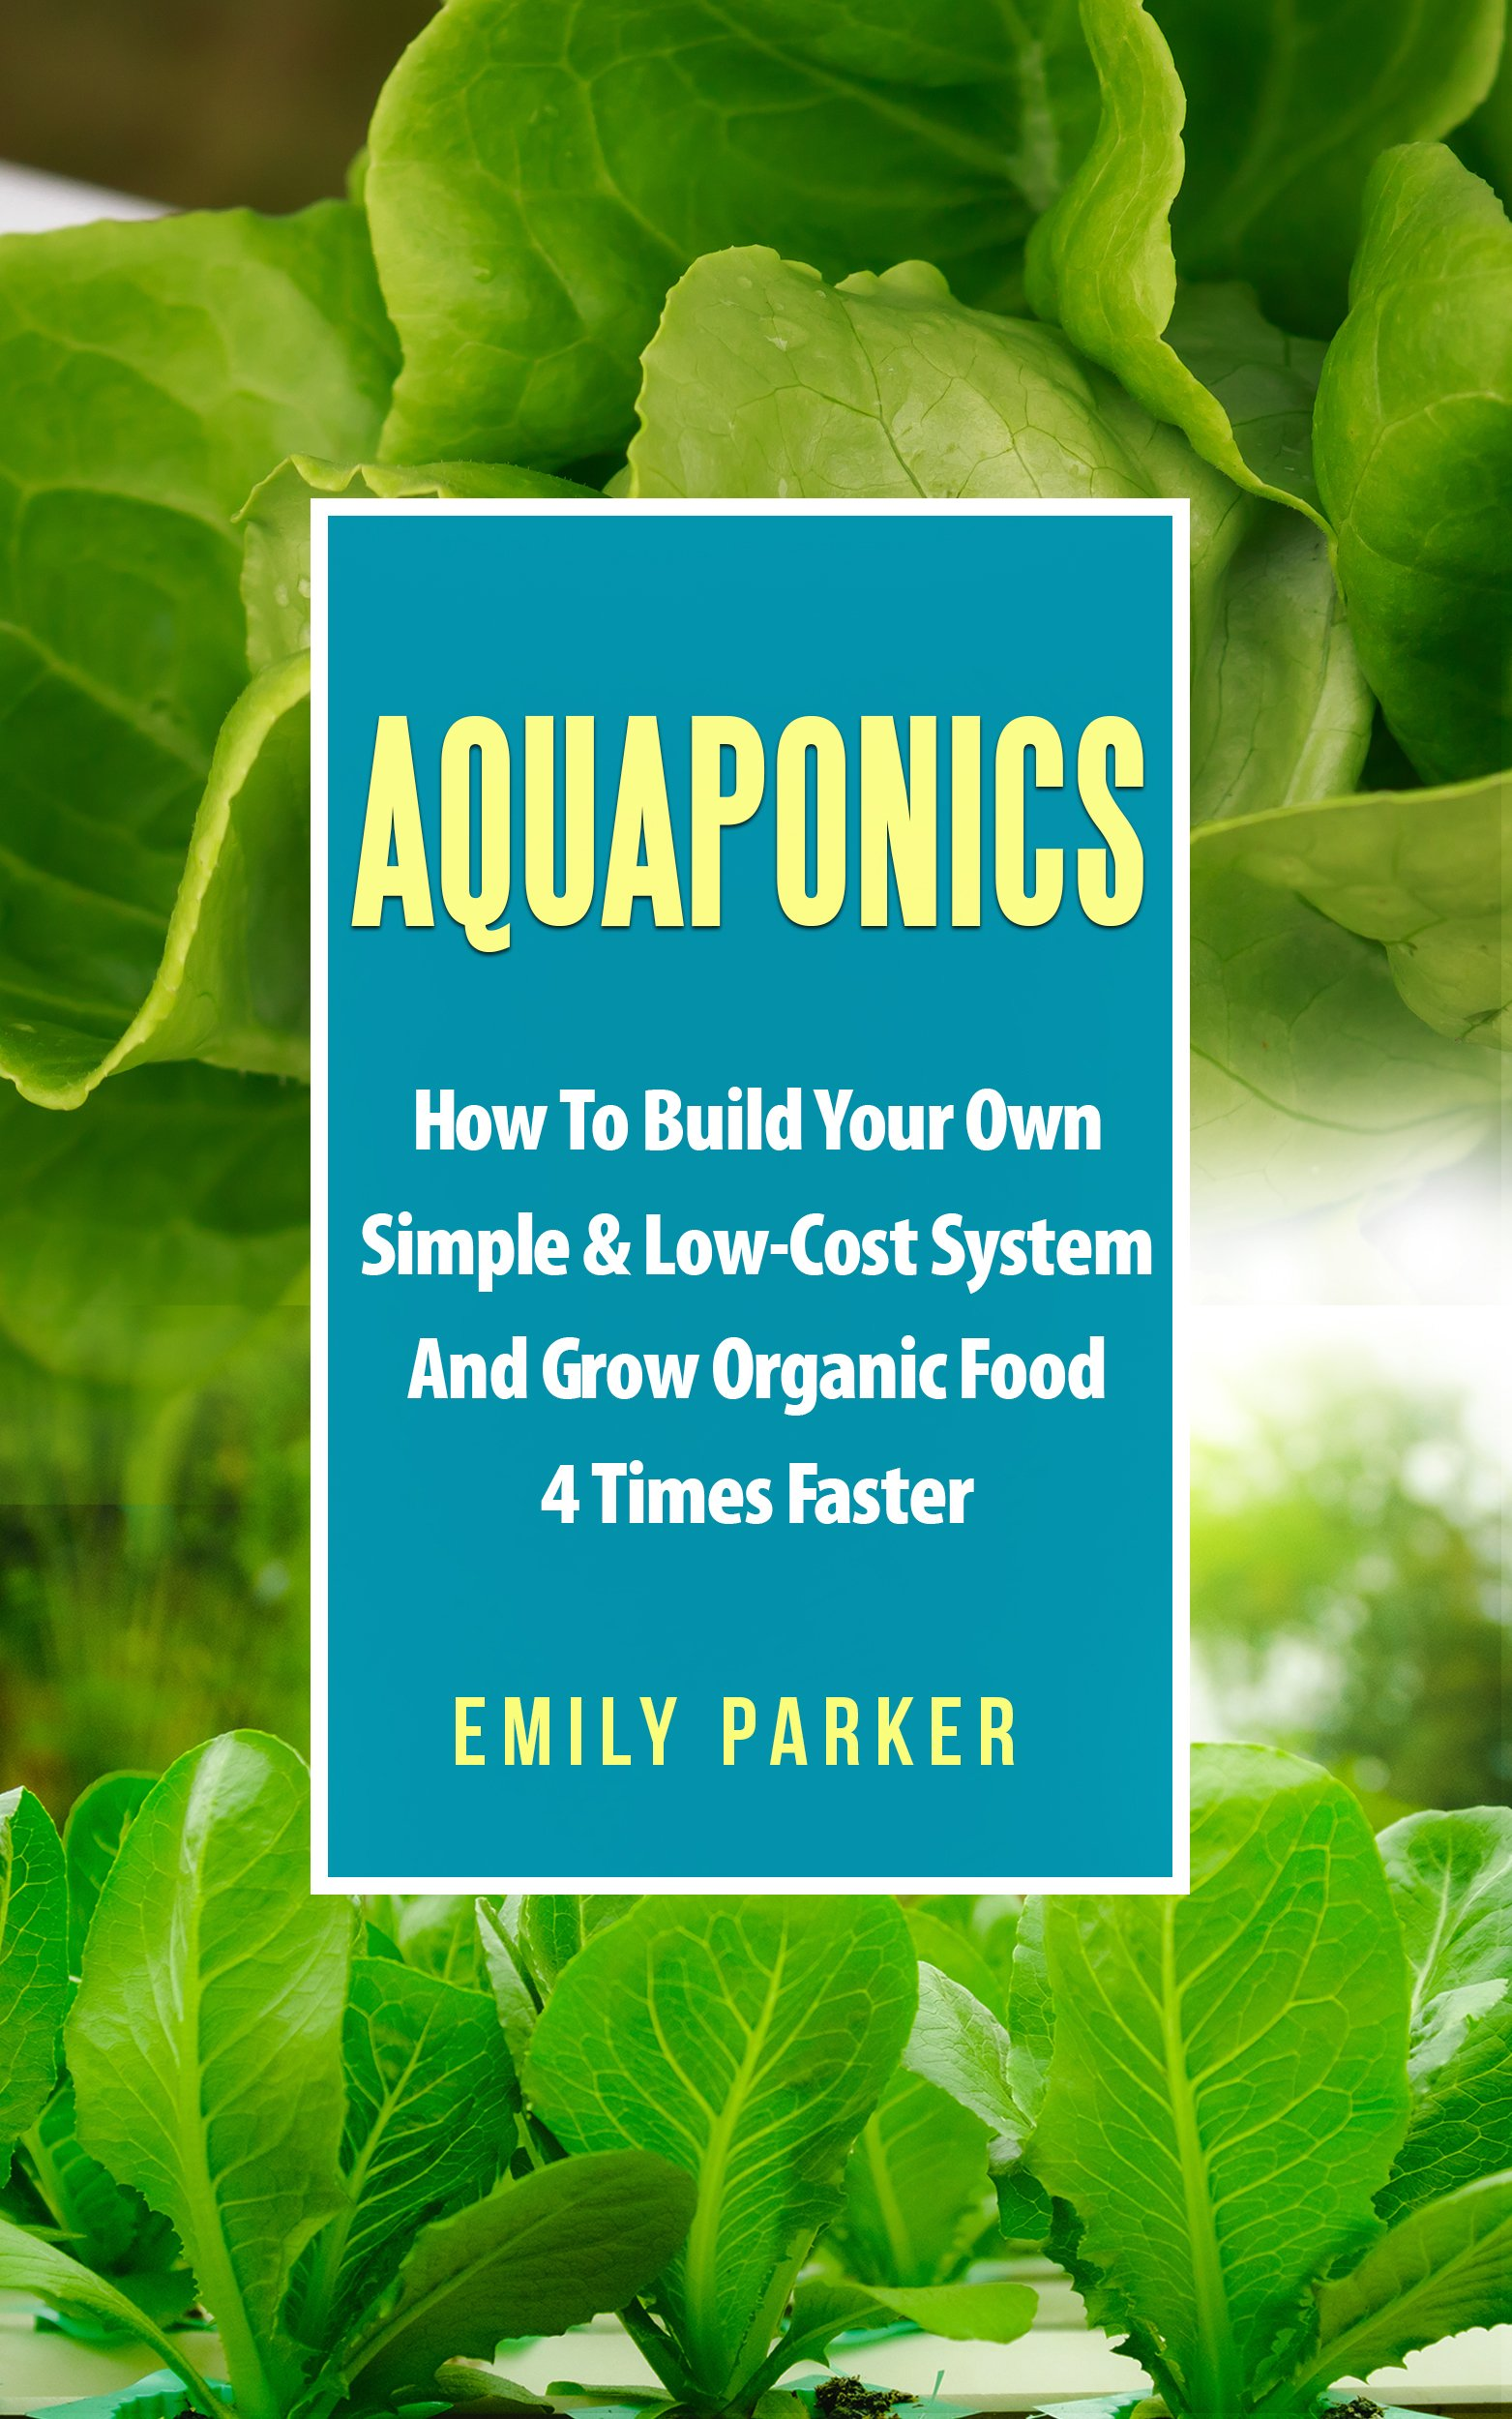 Aquaponics  How To Build Your Own Simple And Low Cost System And Grow Organic Food 4 Times Faster  English Edition